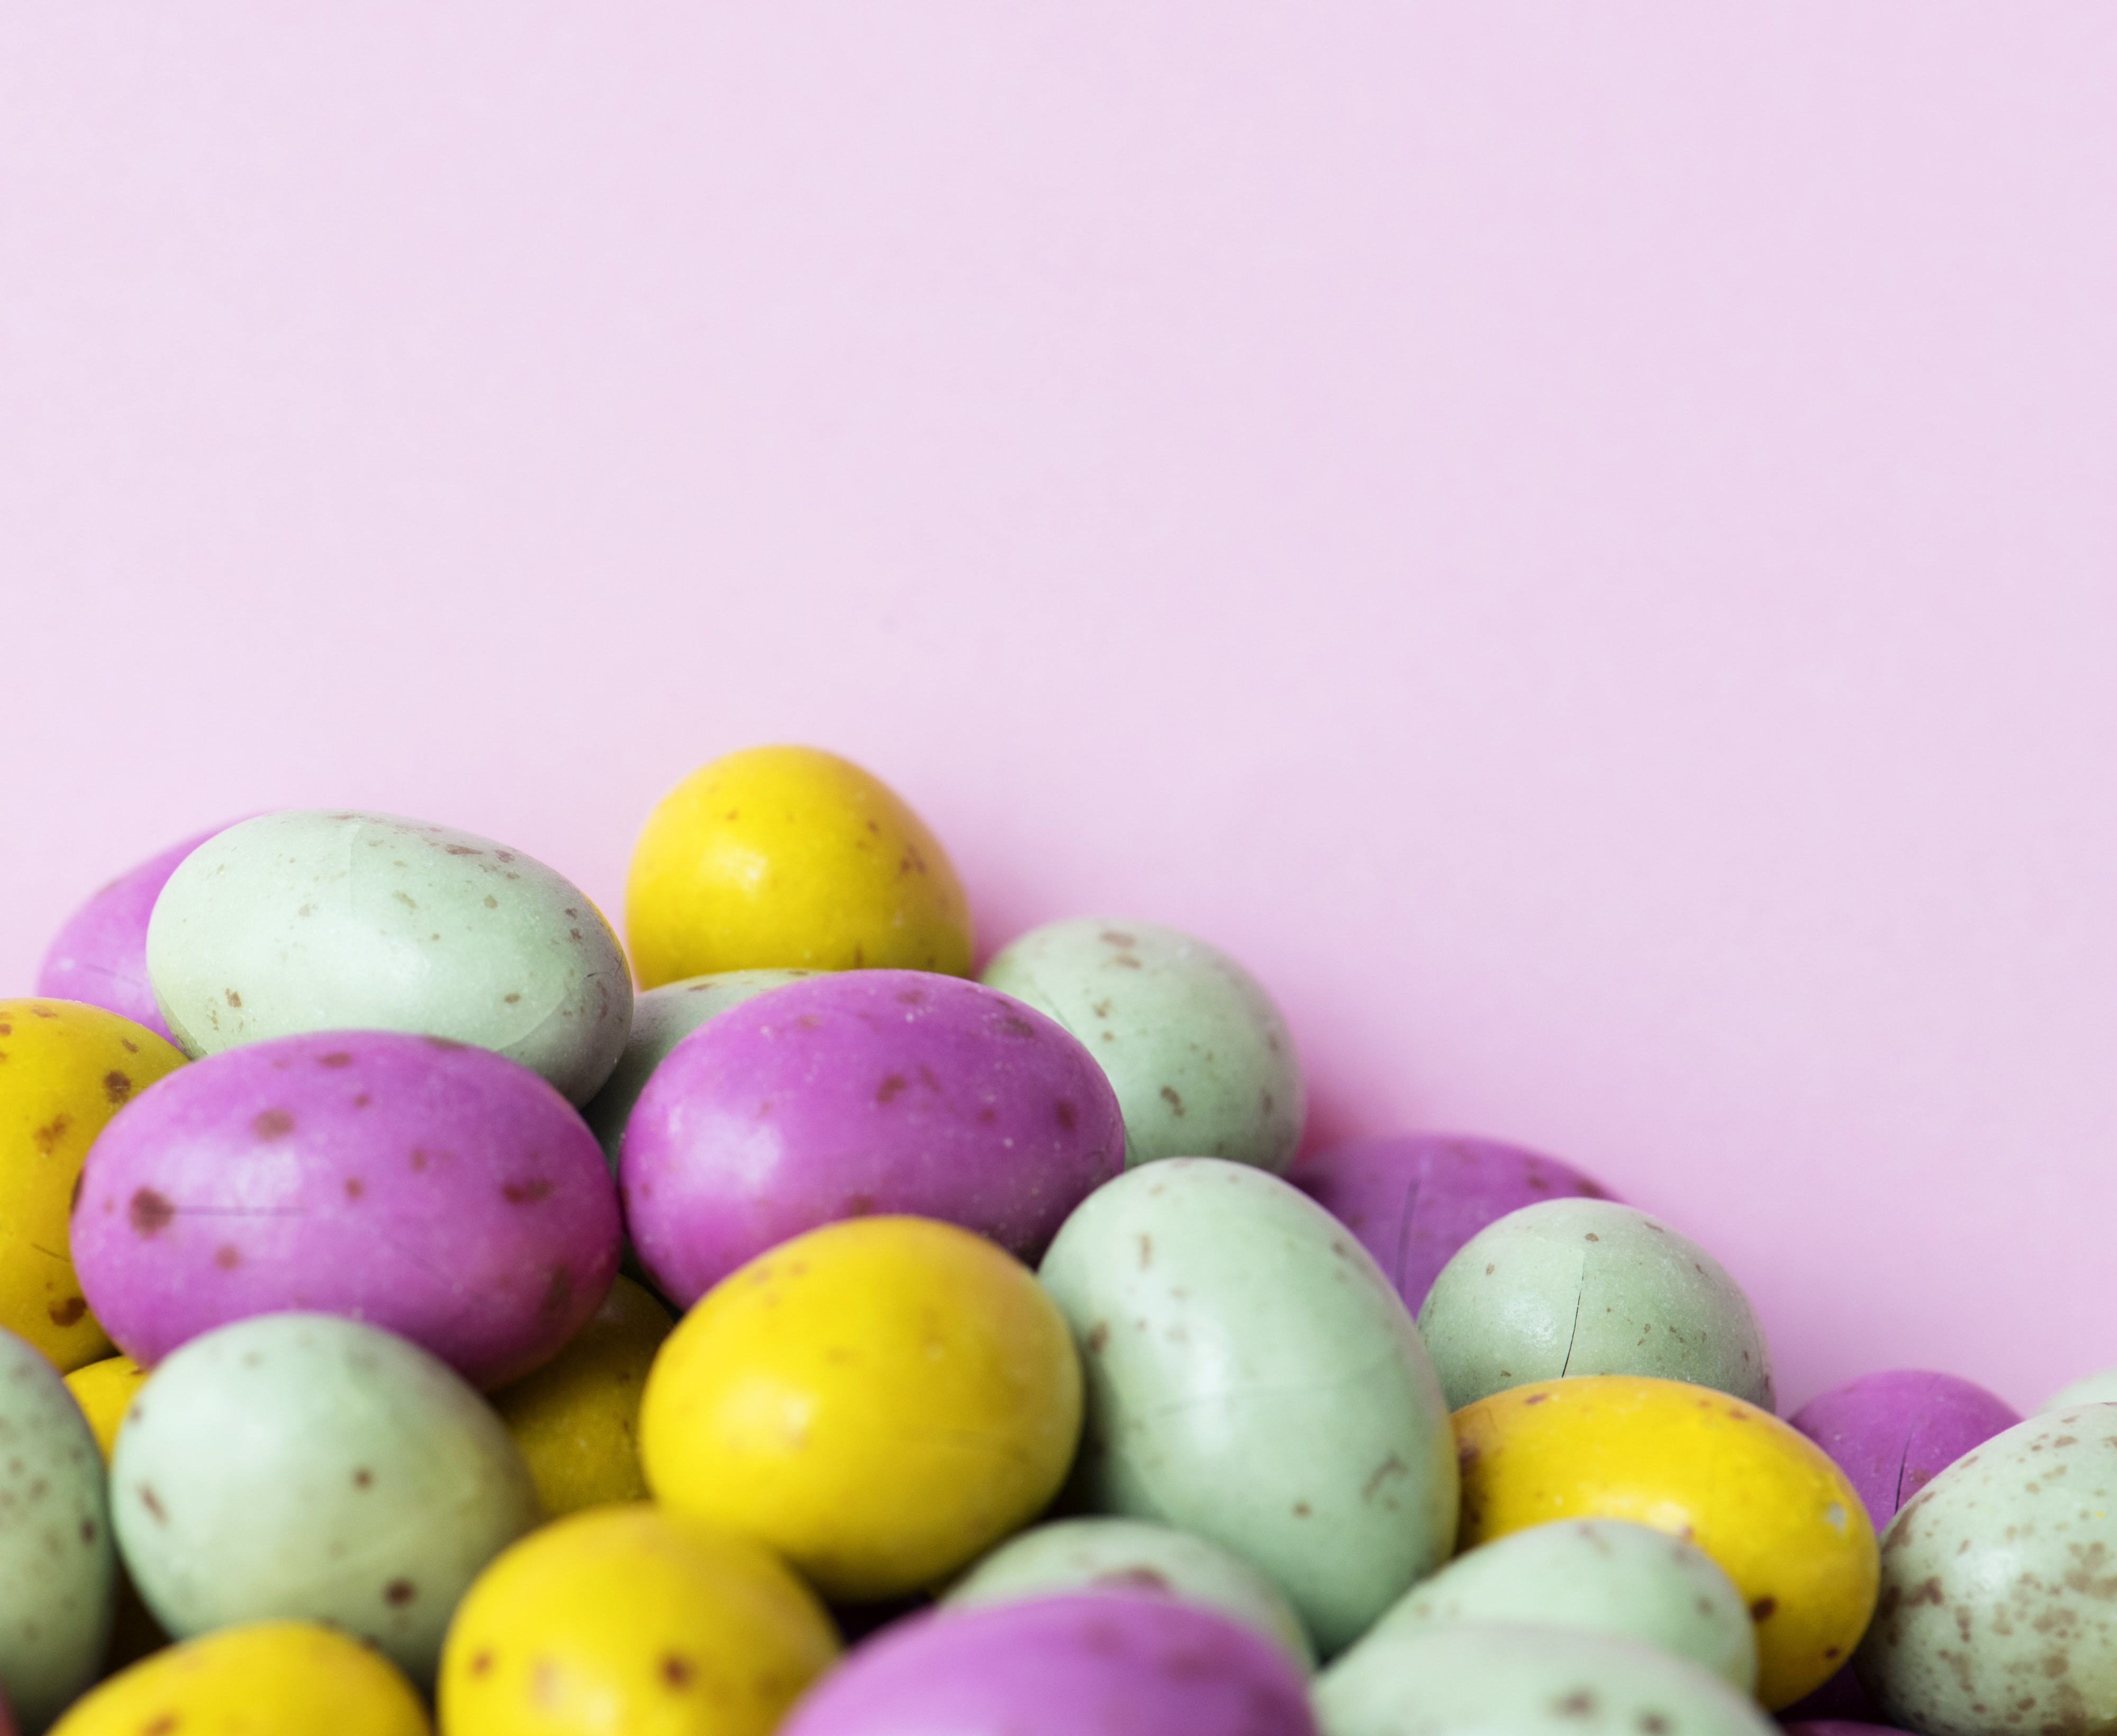 assorted-color egg lot on pink container